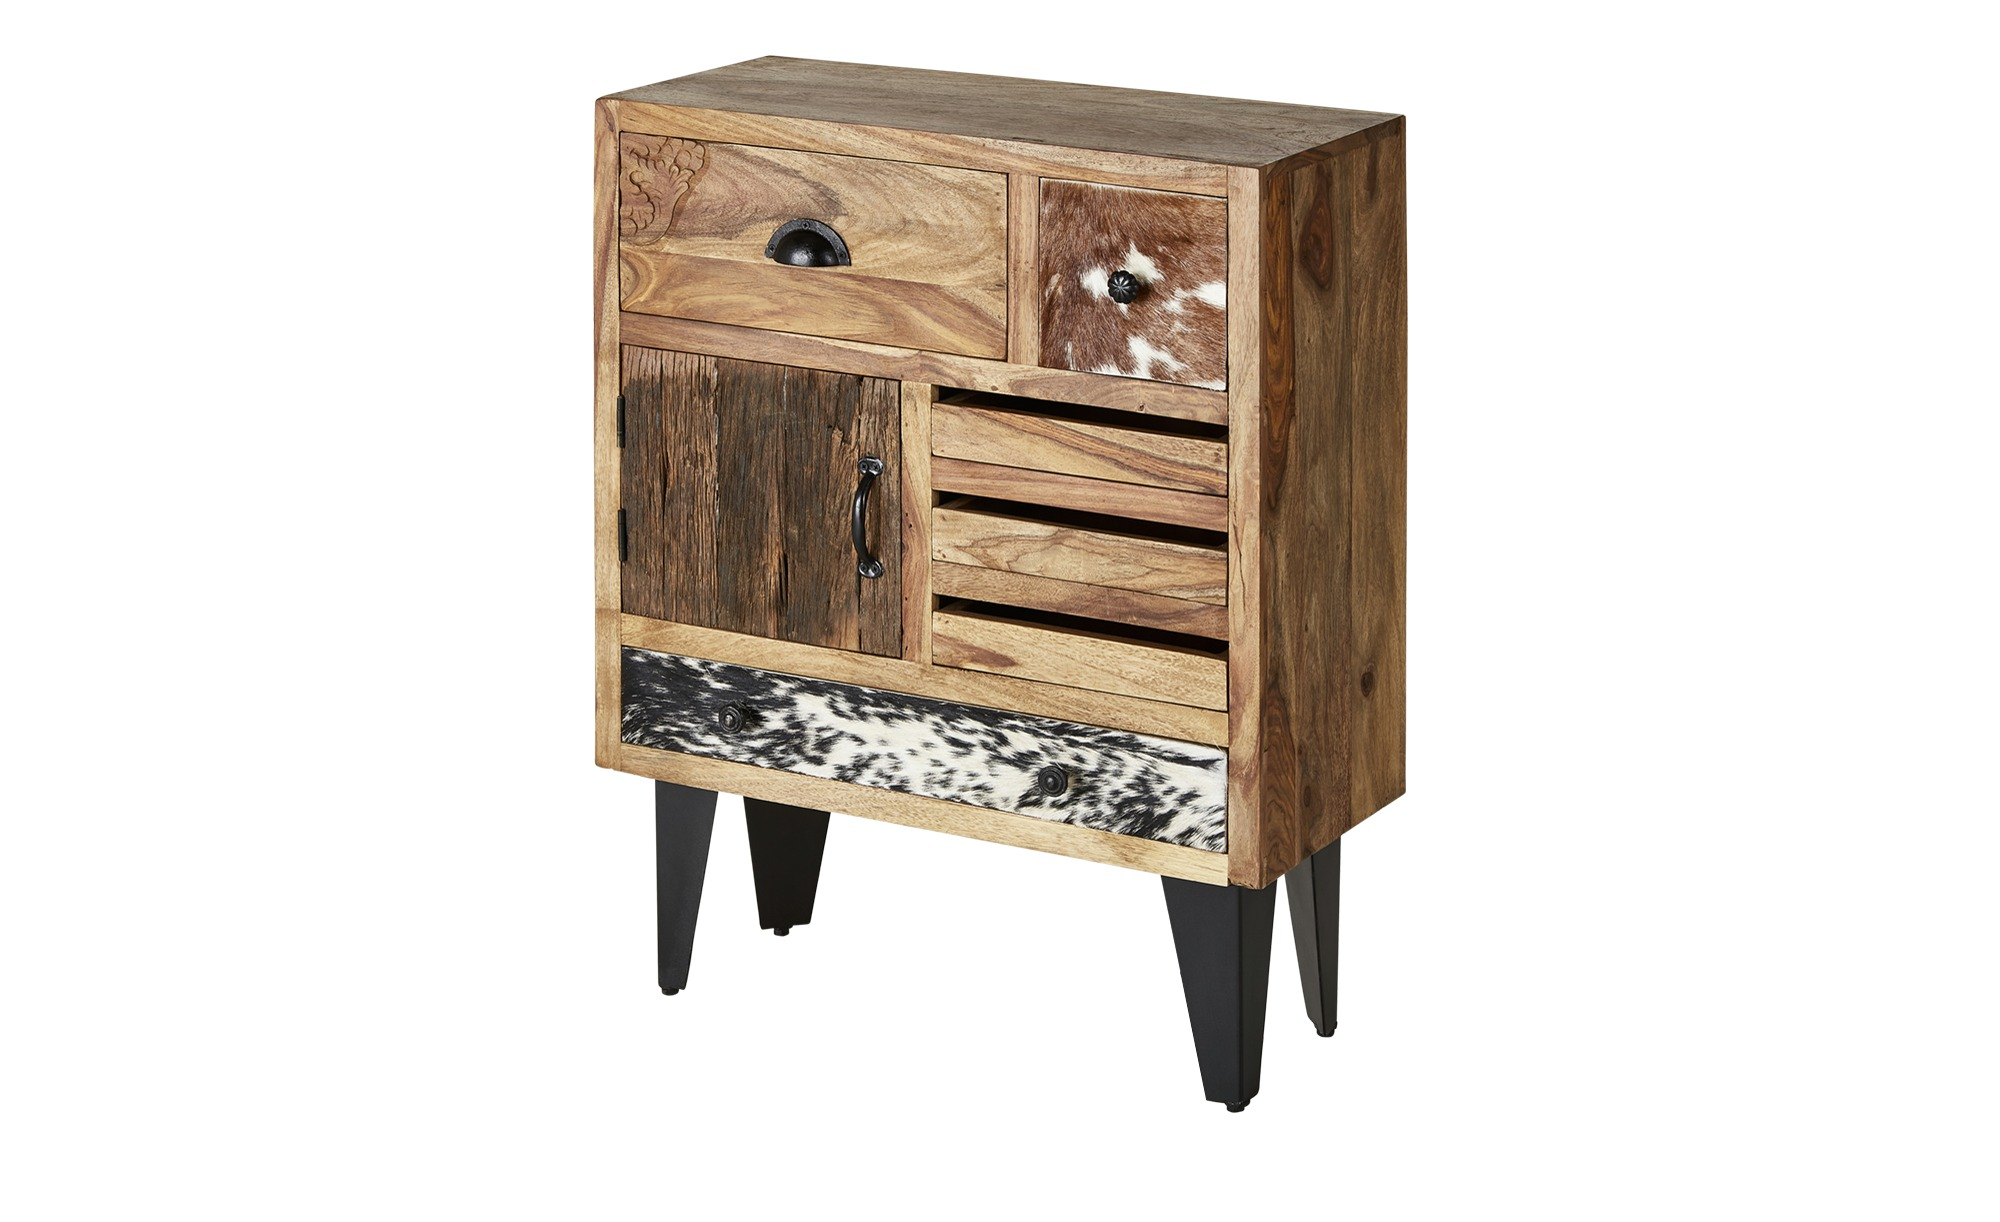 kommode cow breite 70 cm h he 89 cm holzfarben online. Black Bedroom Furniture Sets. Home Design Ideas